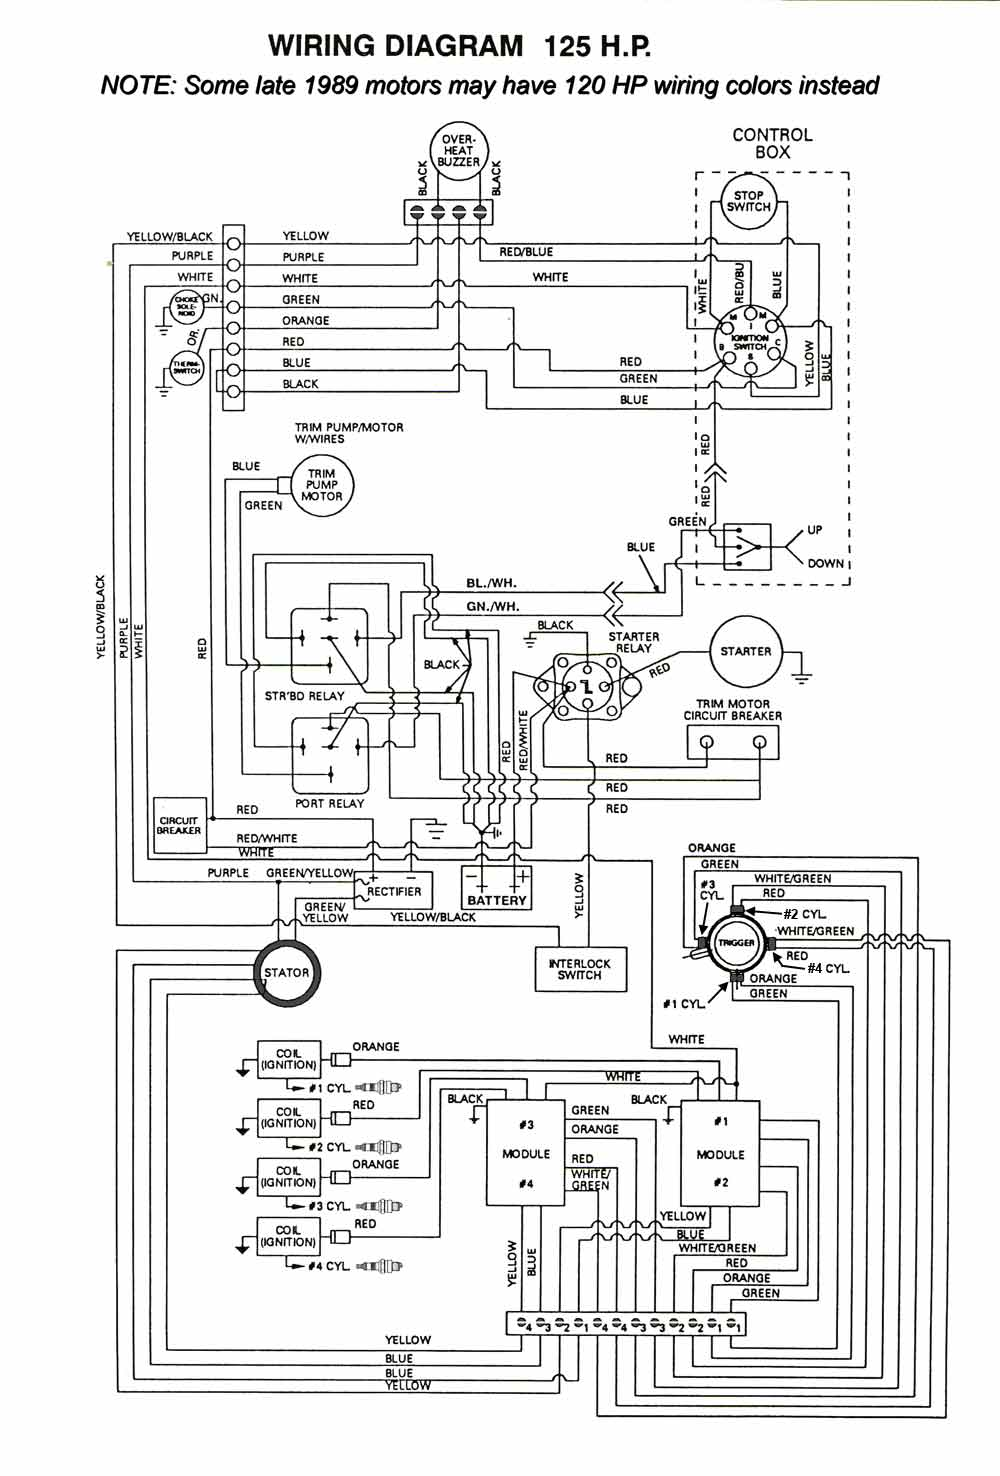 mastertech marine chrysler \u0026 force outboard wiring diagrams 125 HP Force Outboard Motor force 125 hp thru 1989 models engine wiring